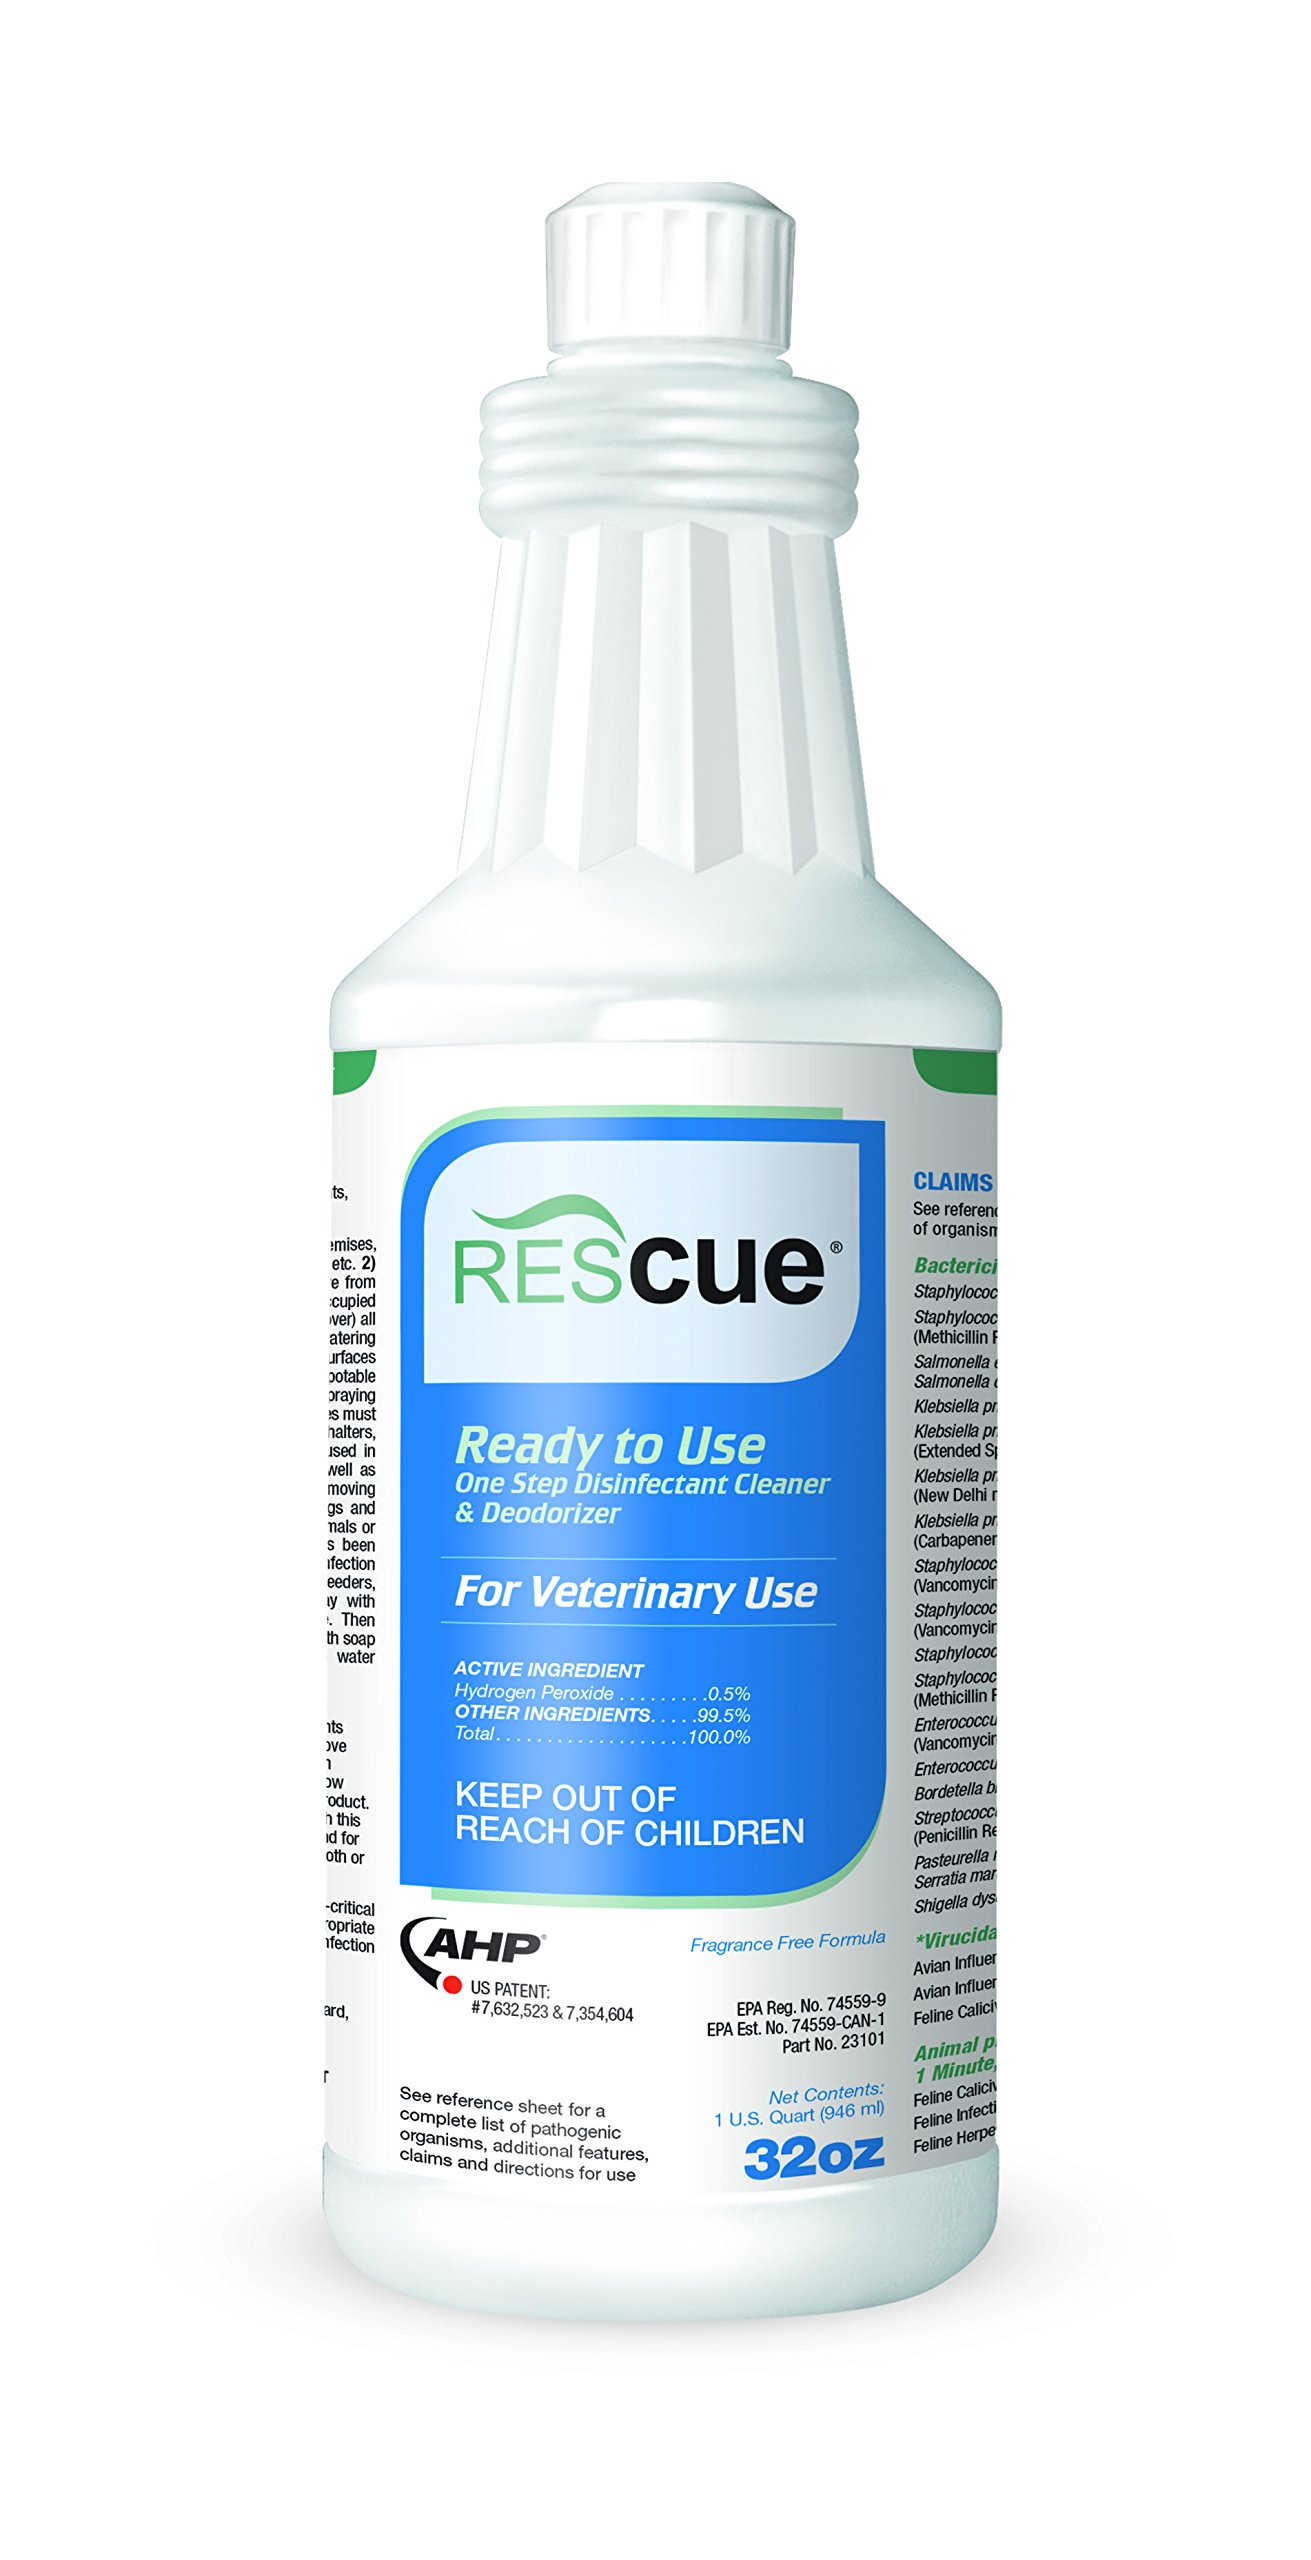 Rescue RTU One-Step Disinfectant Cleaner & Deodorizer, 32 oz. Squeeze Bottle